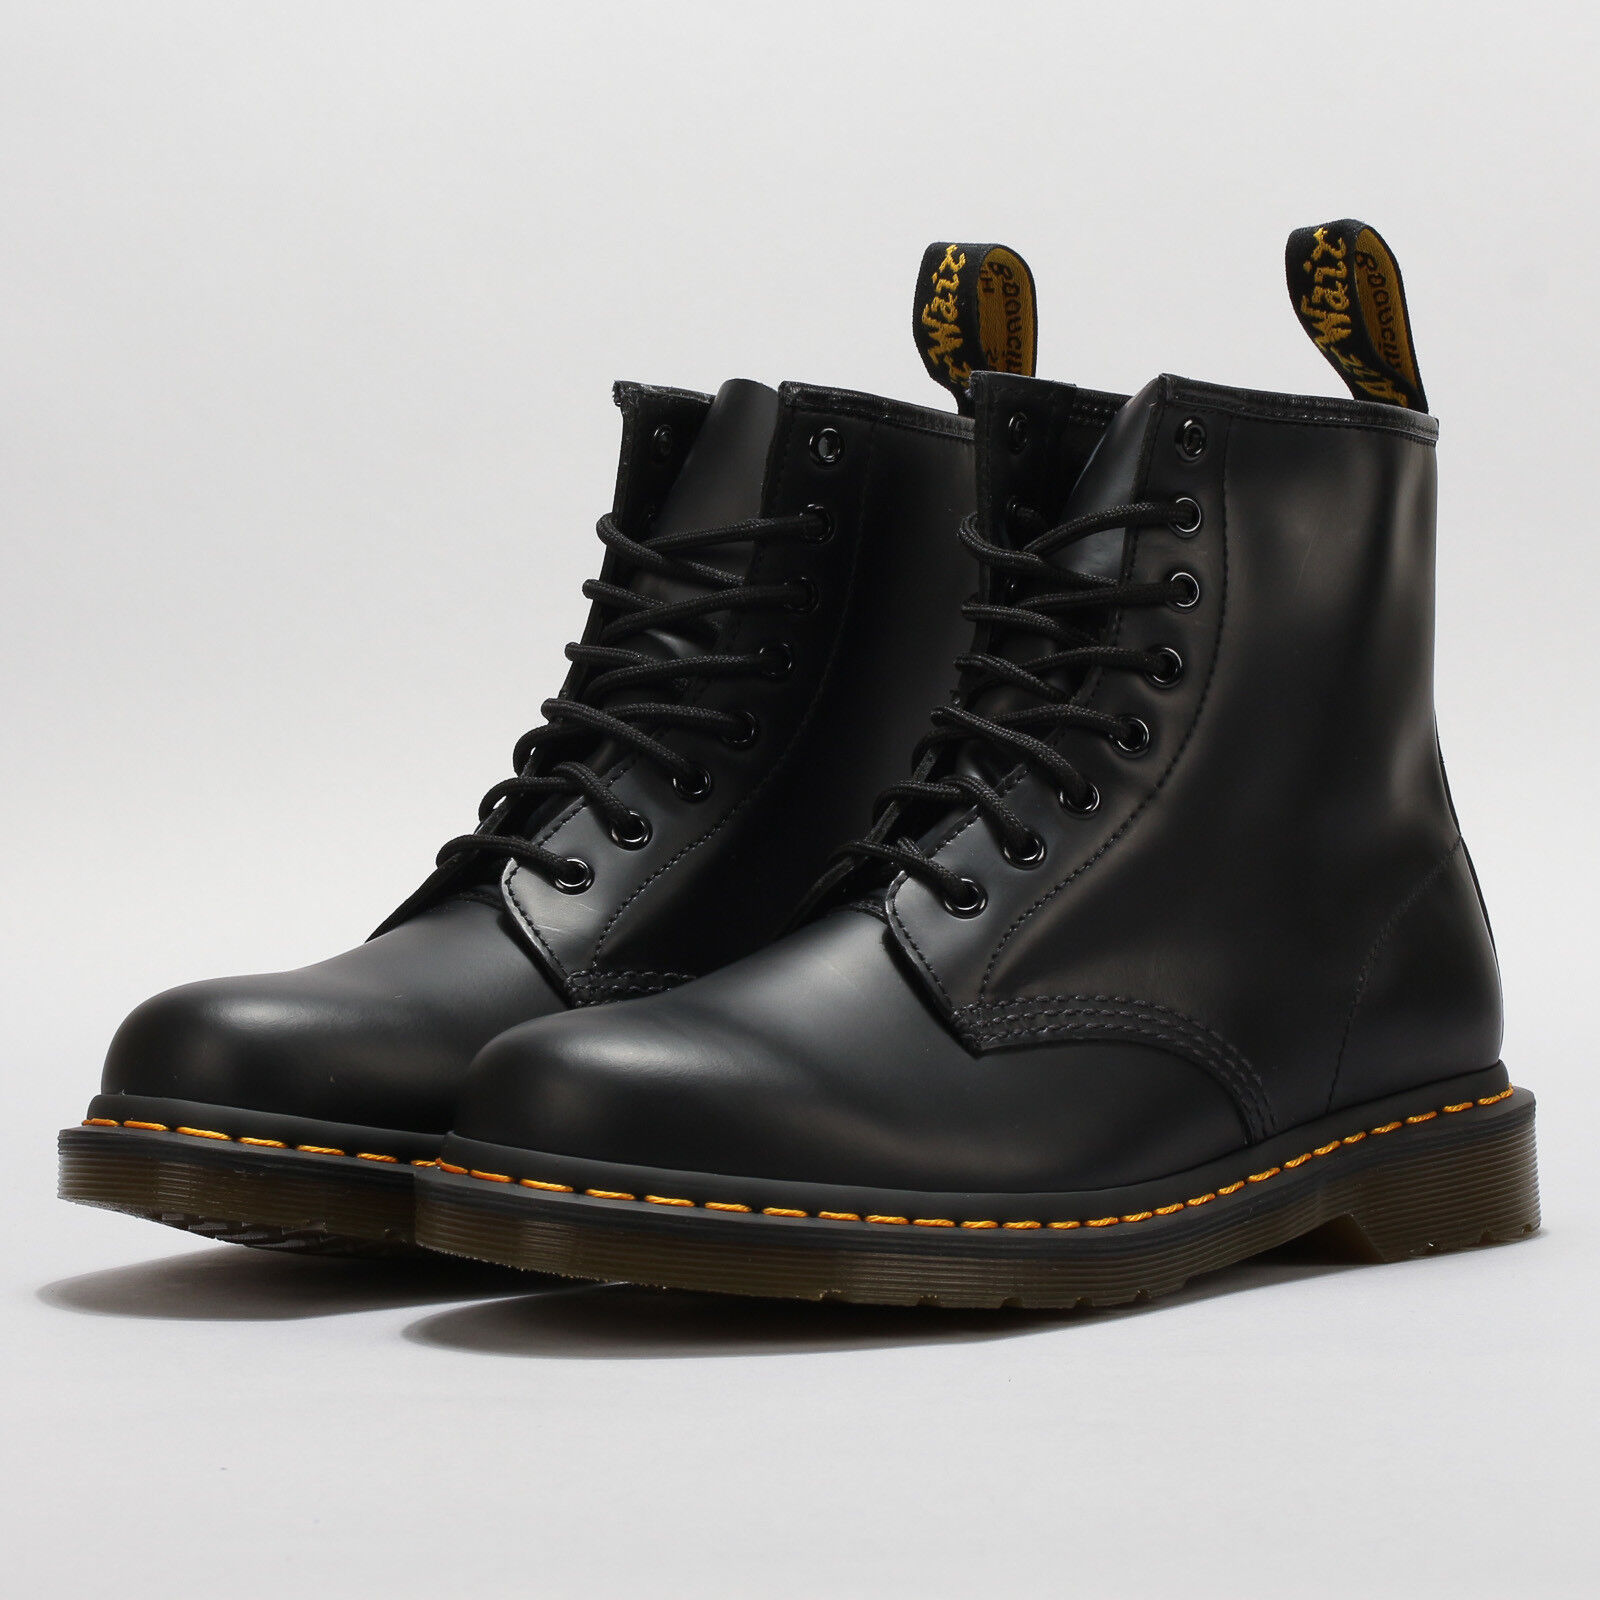 Dr. Martens 1460 black smooth EU 45, Schwarz, DM11822006